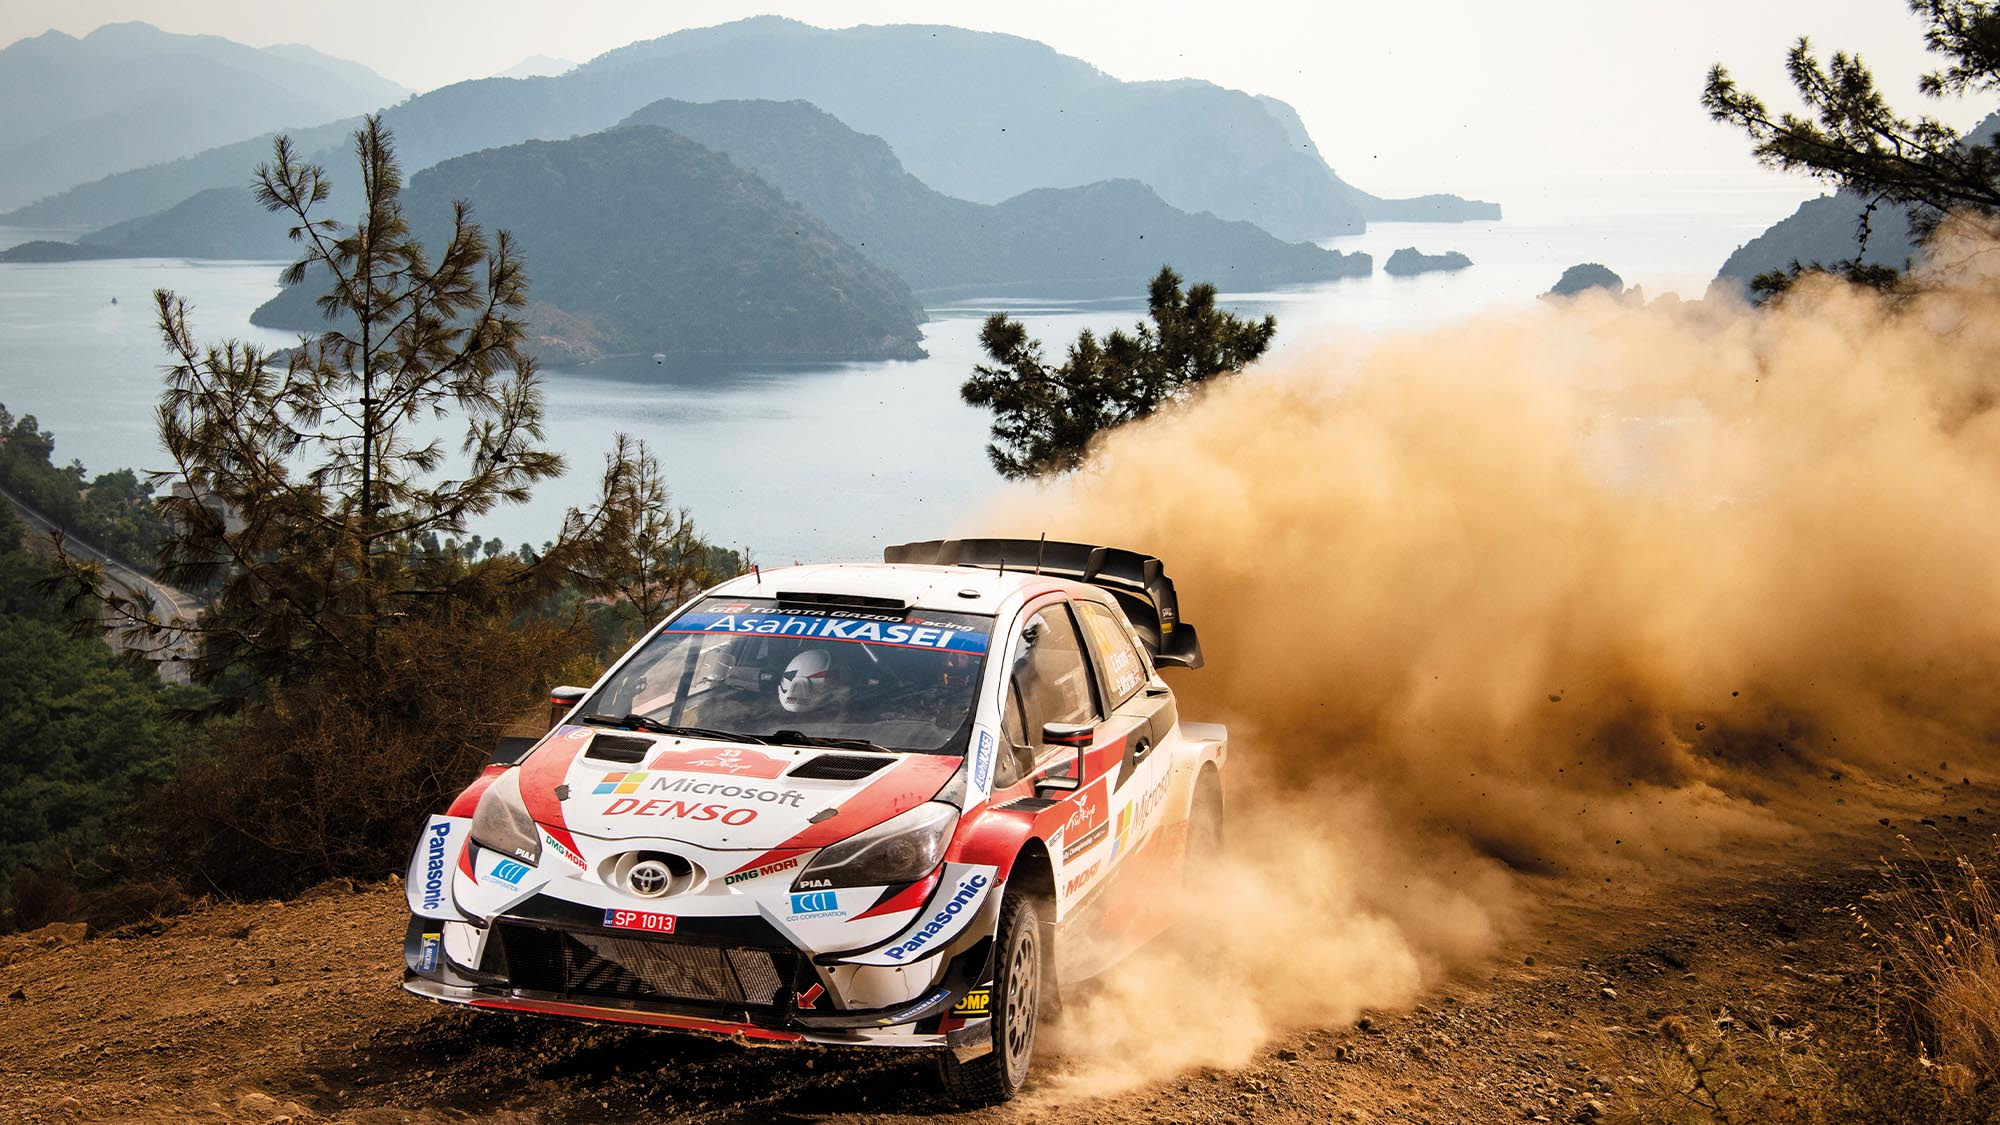 Elfyn Evans heads to victory in his Toyota Yaris on the 2020 WRC Rally Turkey